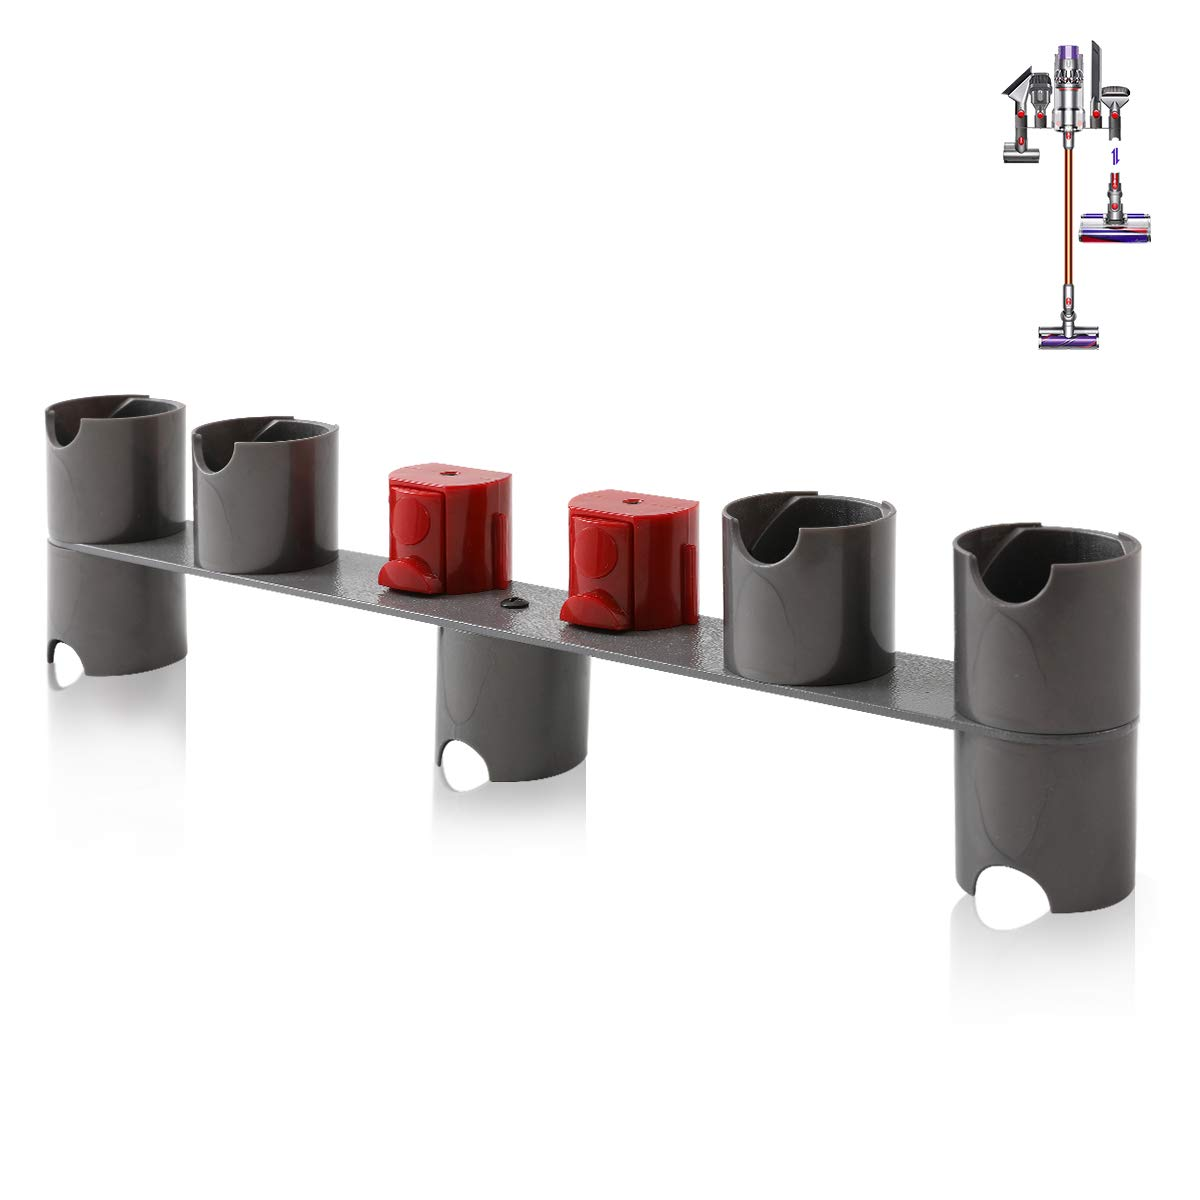 DerBlue Docks Station Accessory Holders Fit for Dyson V7,V8 Vacuum Cleaner(Seven adapters)-2.0 Version